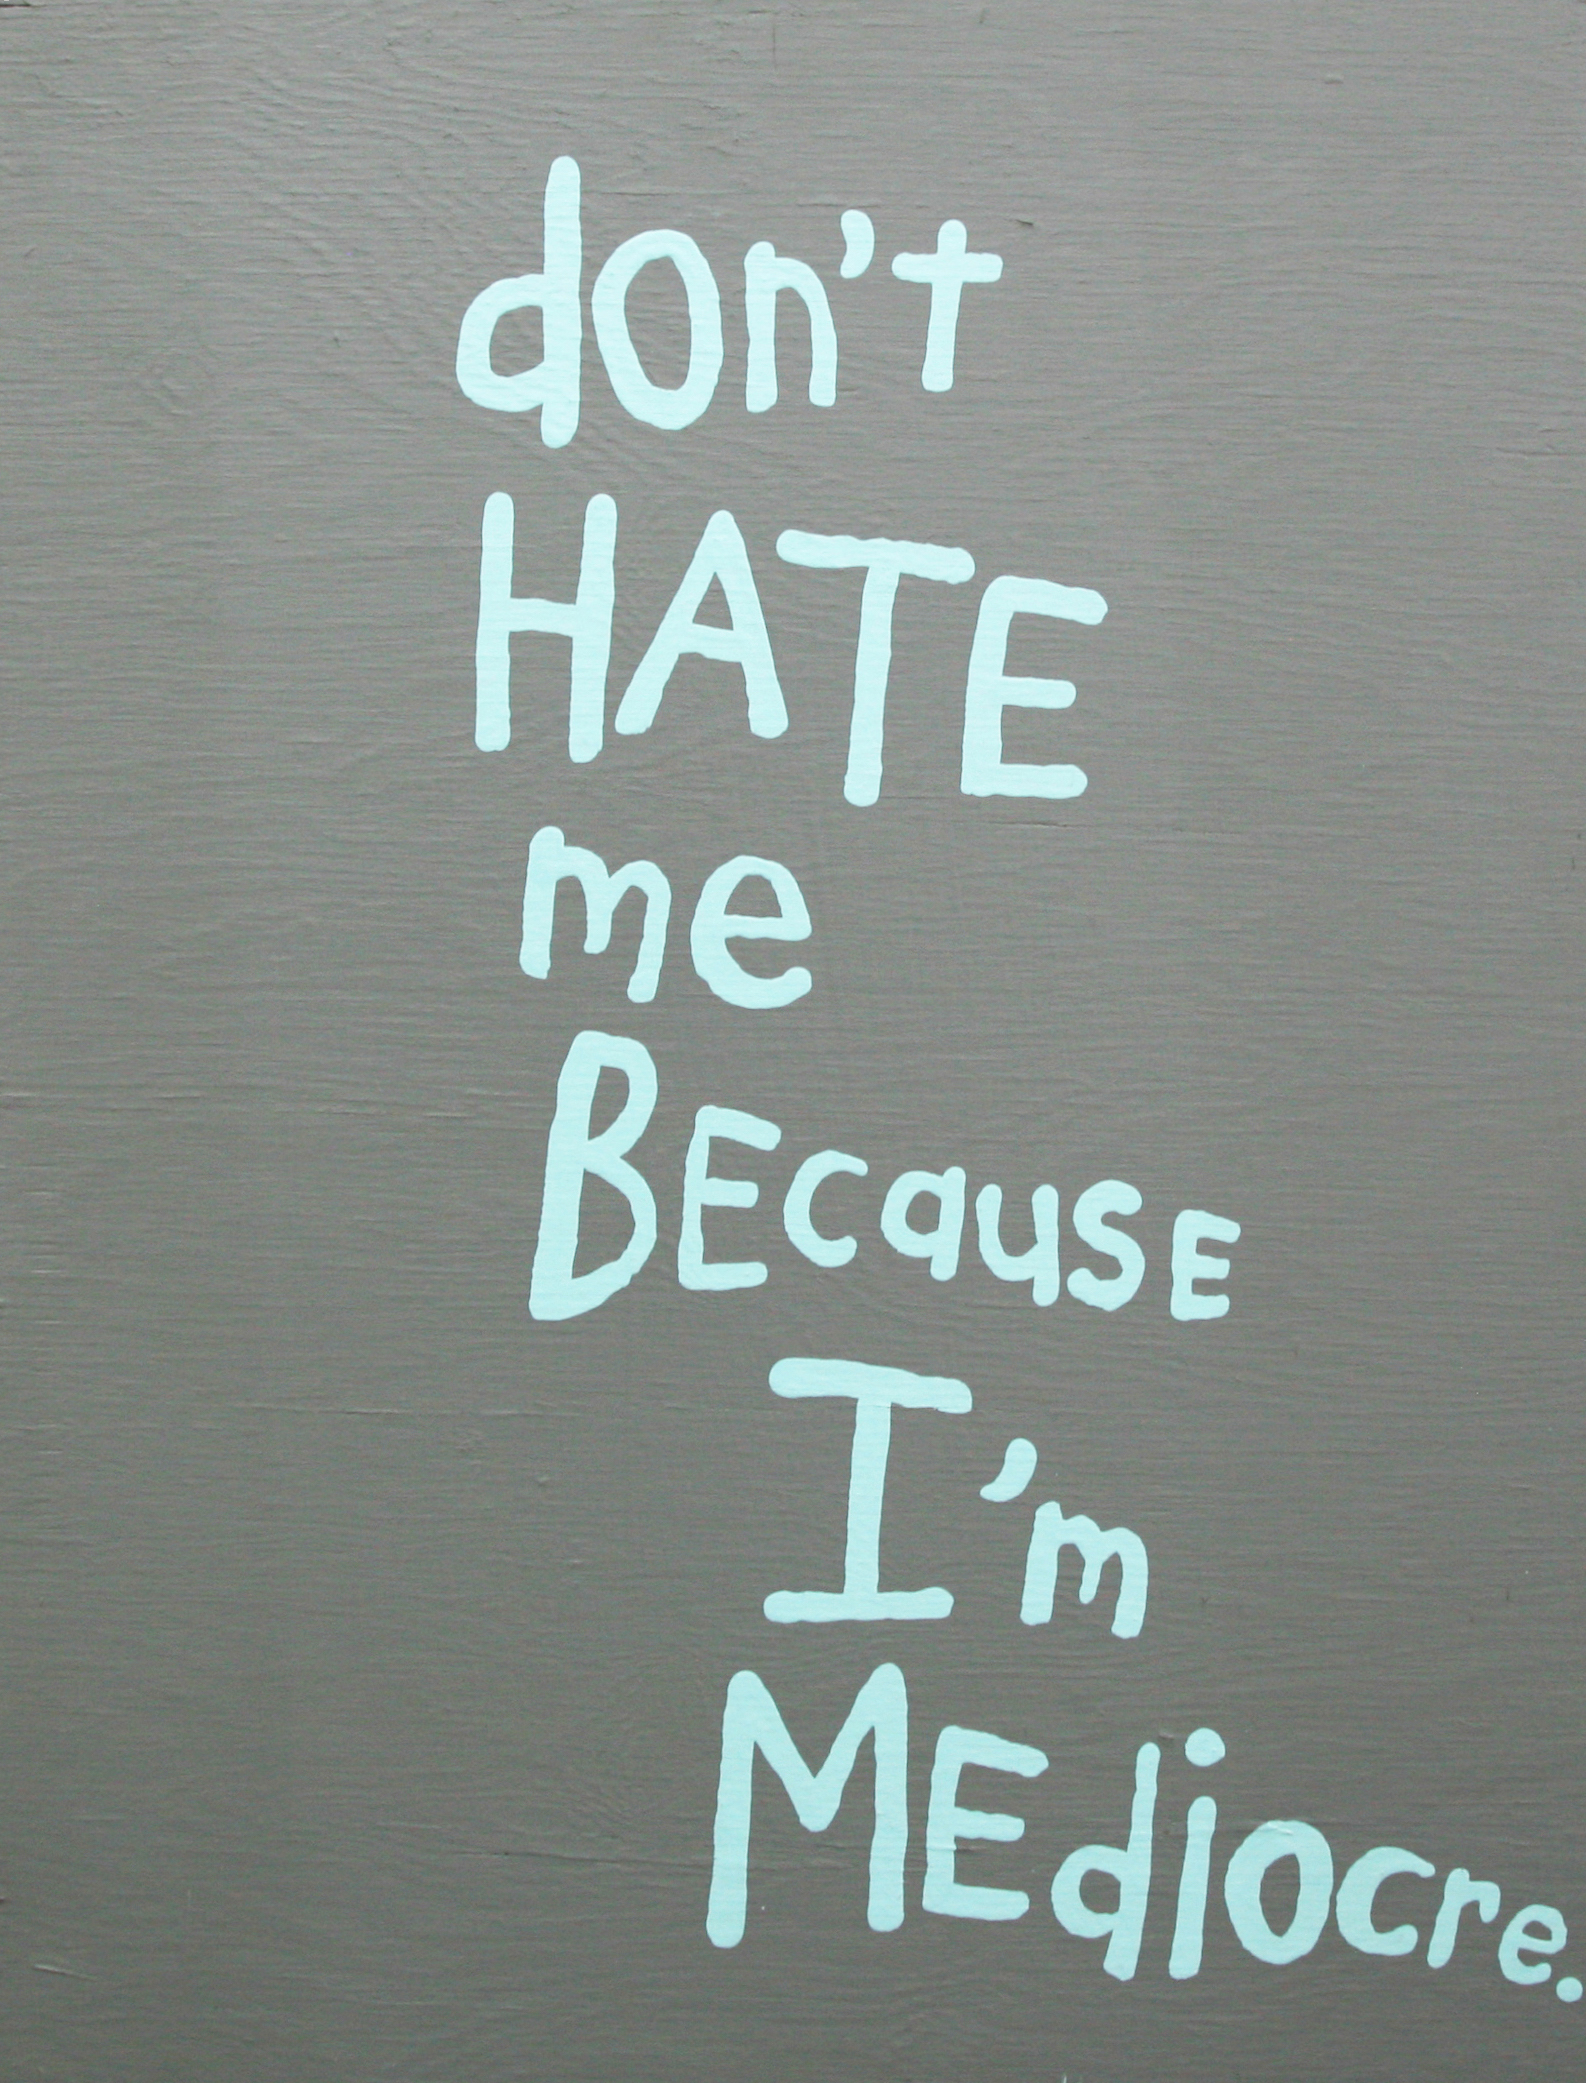 Don't Hate Me Because I'm Mediocre  by Cary Leibowitz. Courtesy of  Invisible Exports Gallery